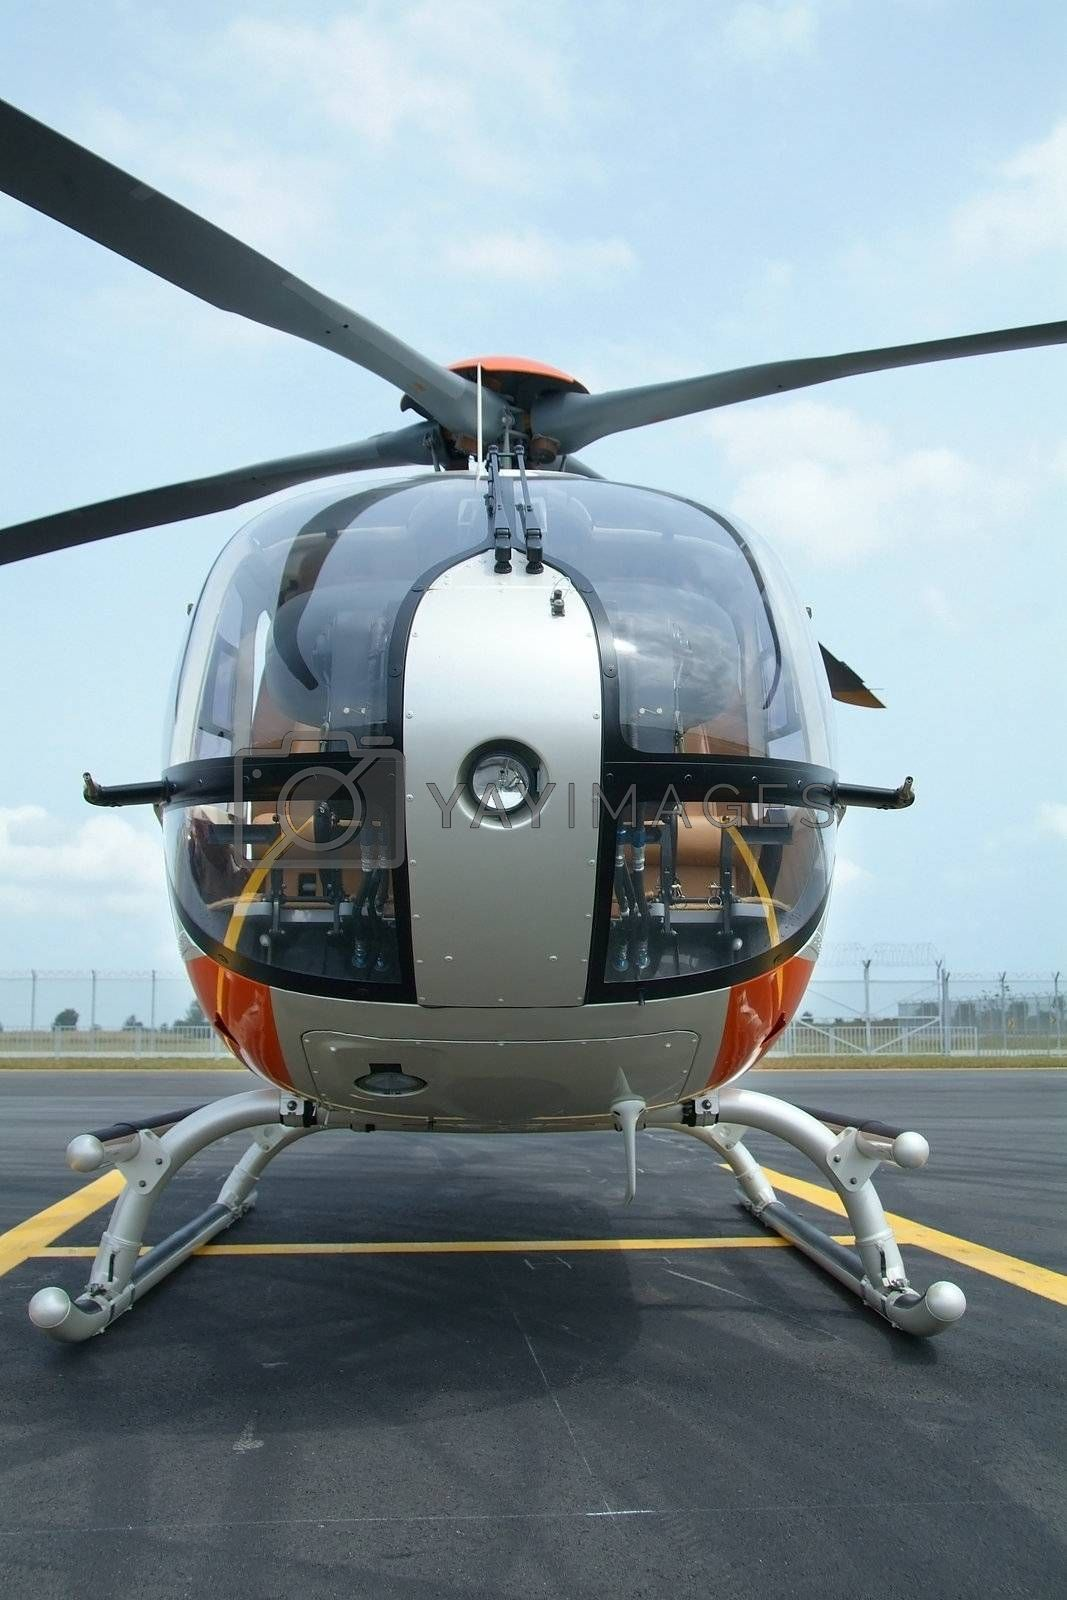 Helicopter, front view by epixx